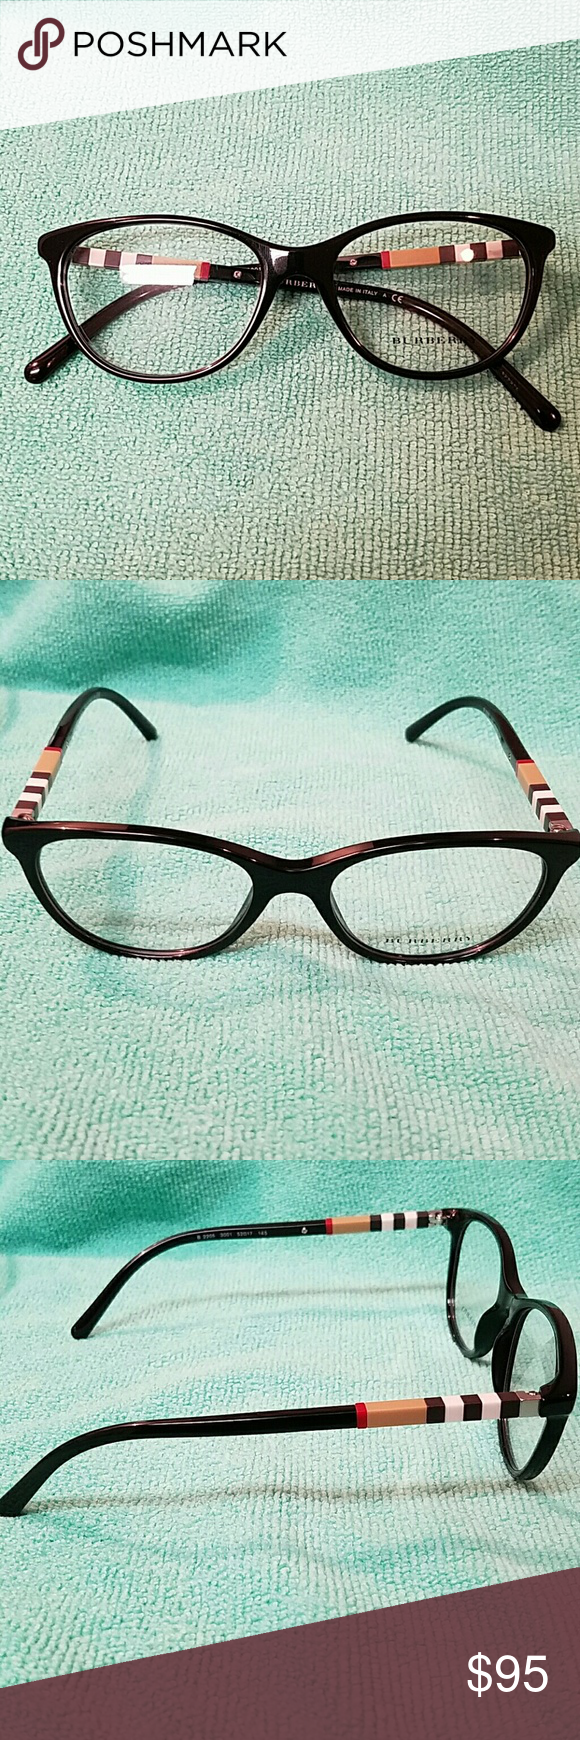 8d3610d612a8 Burberry B2205 3001 Eyeframe Black with burberry pattern. No case just  Eyeframe Burberry Accessories Glasses